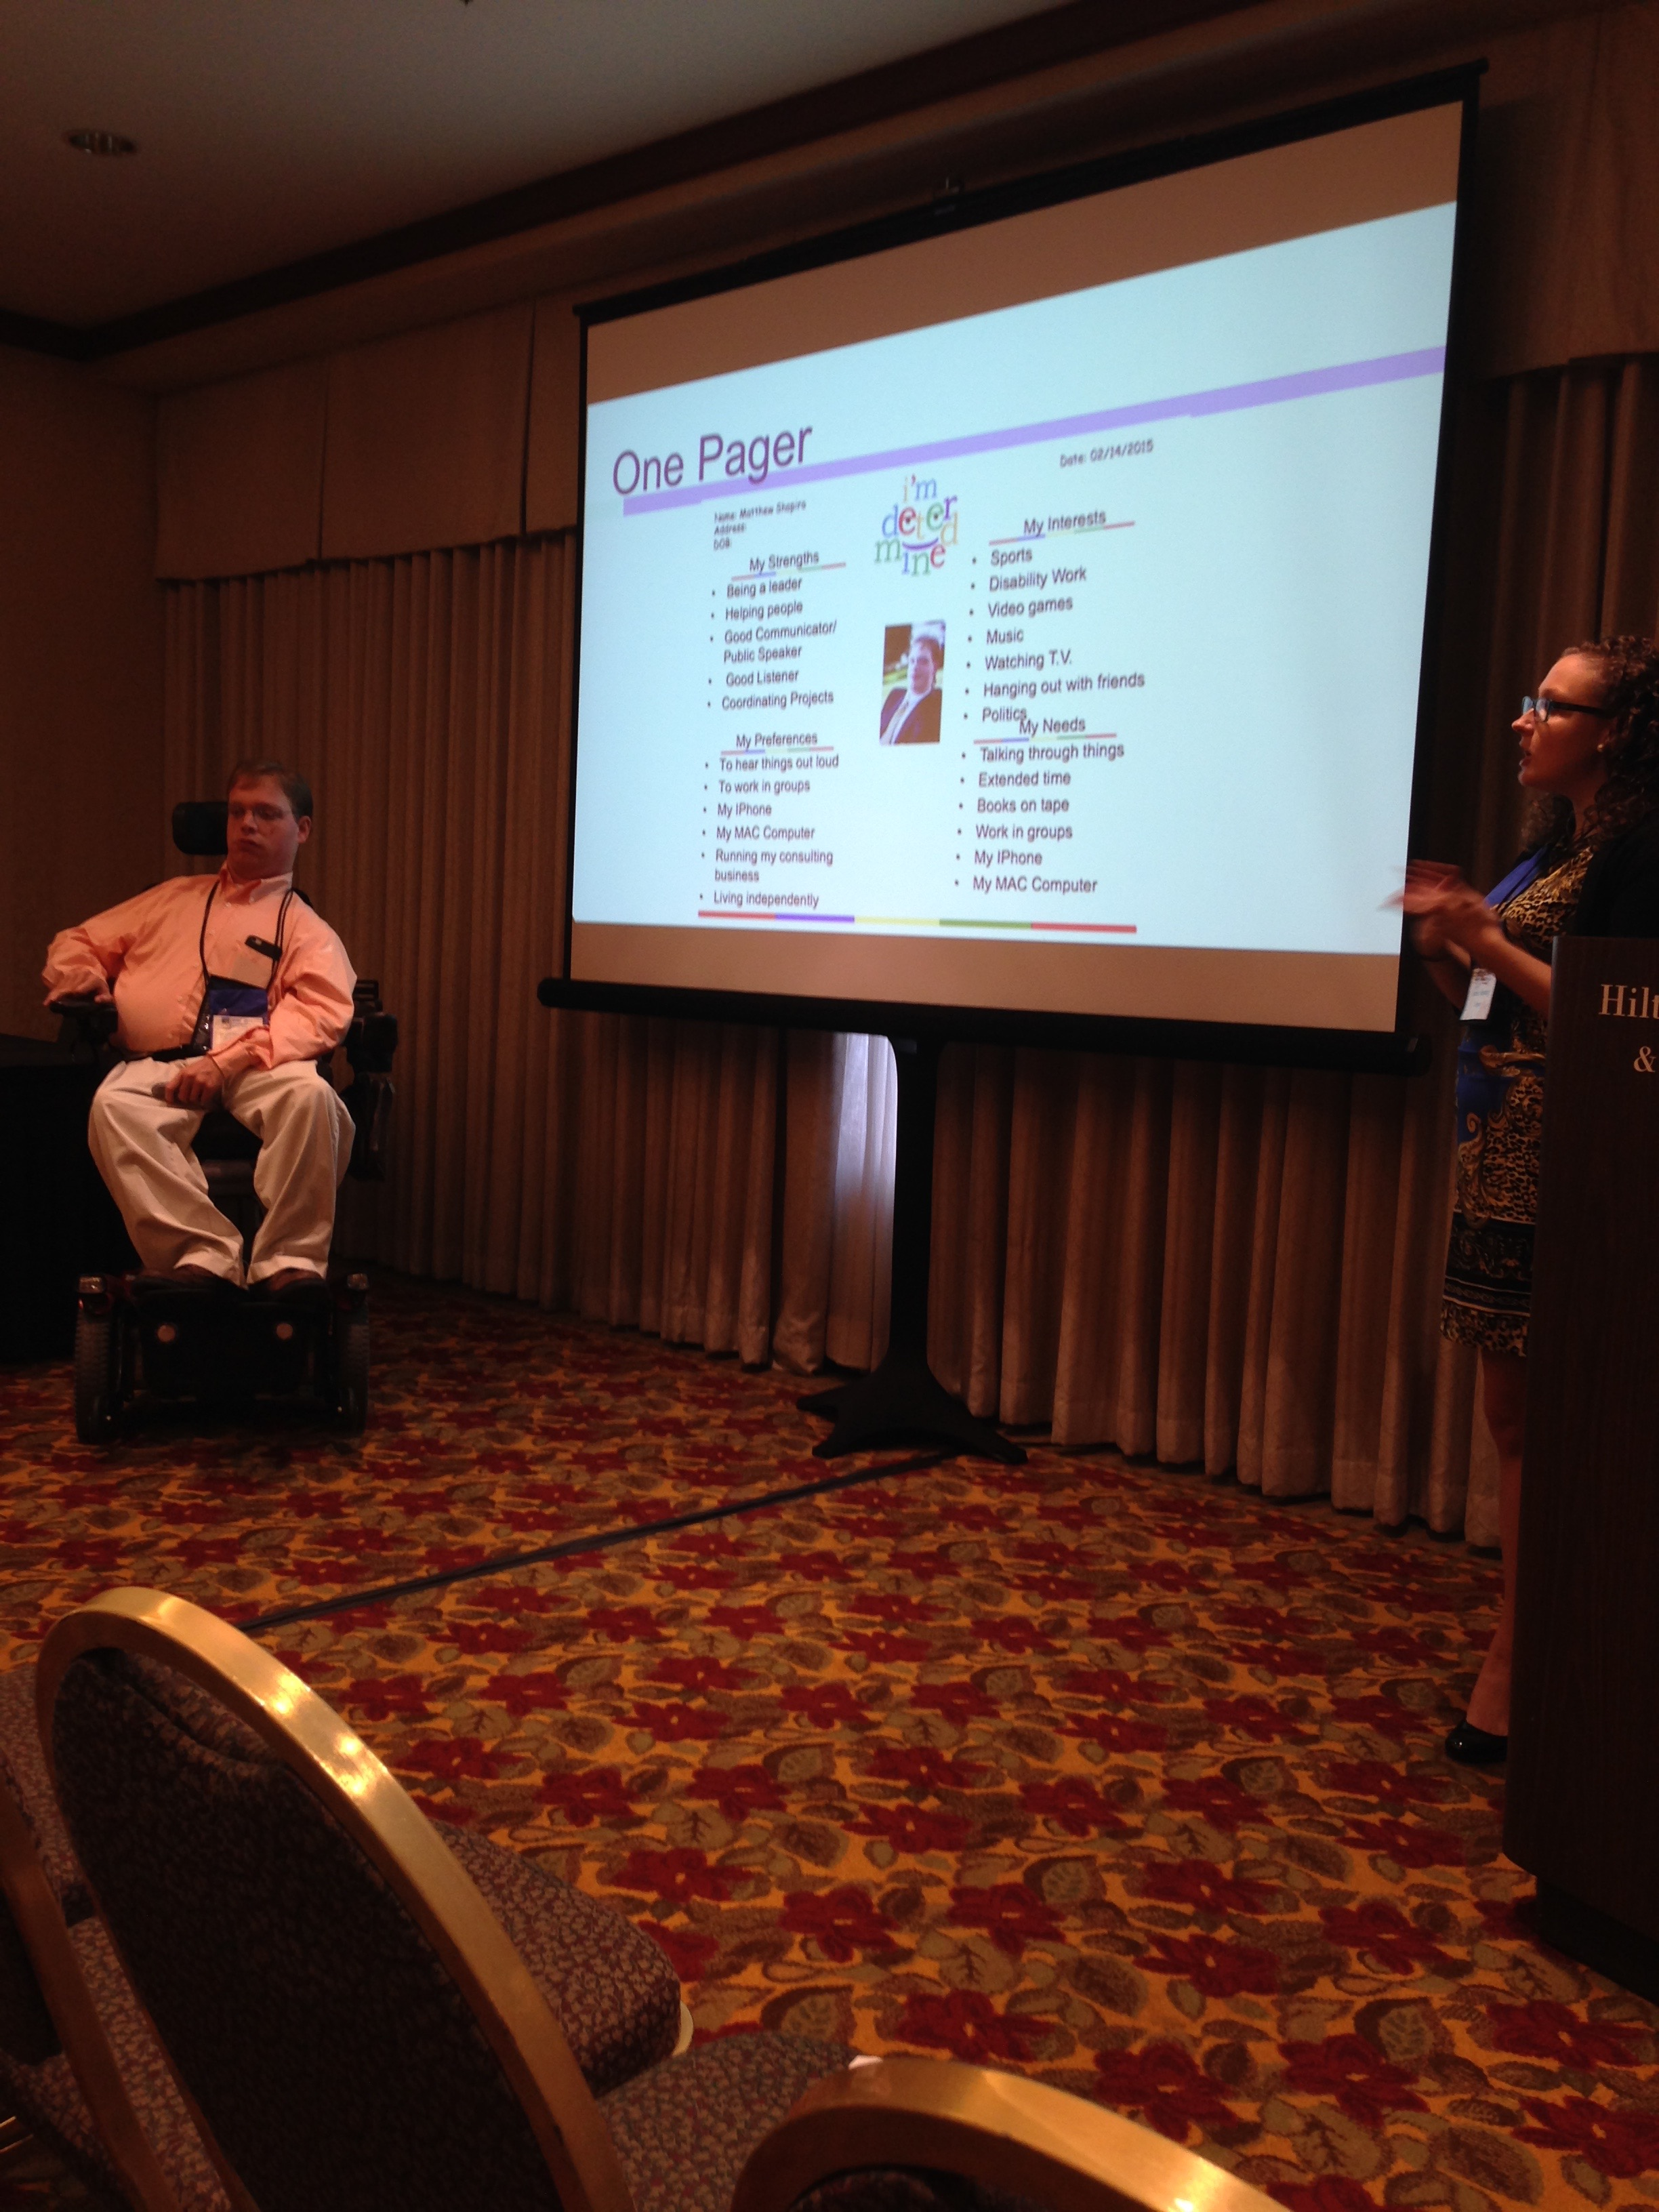 PHOTO: Annie Downing and I presented at the 2015 annual DCDT conference in Portland Oregon. Our presentation was about our journey to becoming strong self advocates.